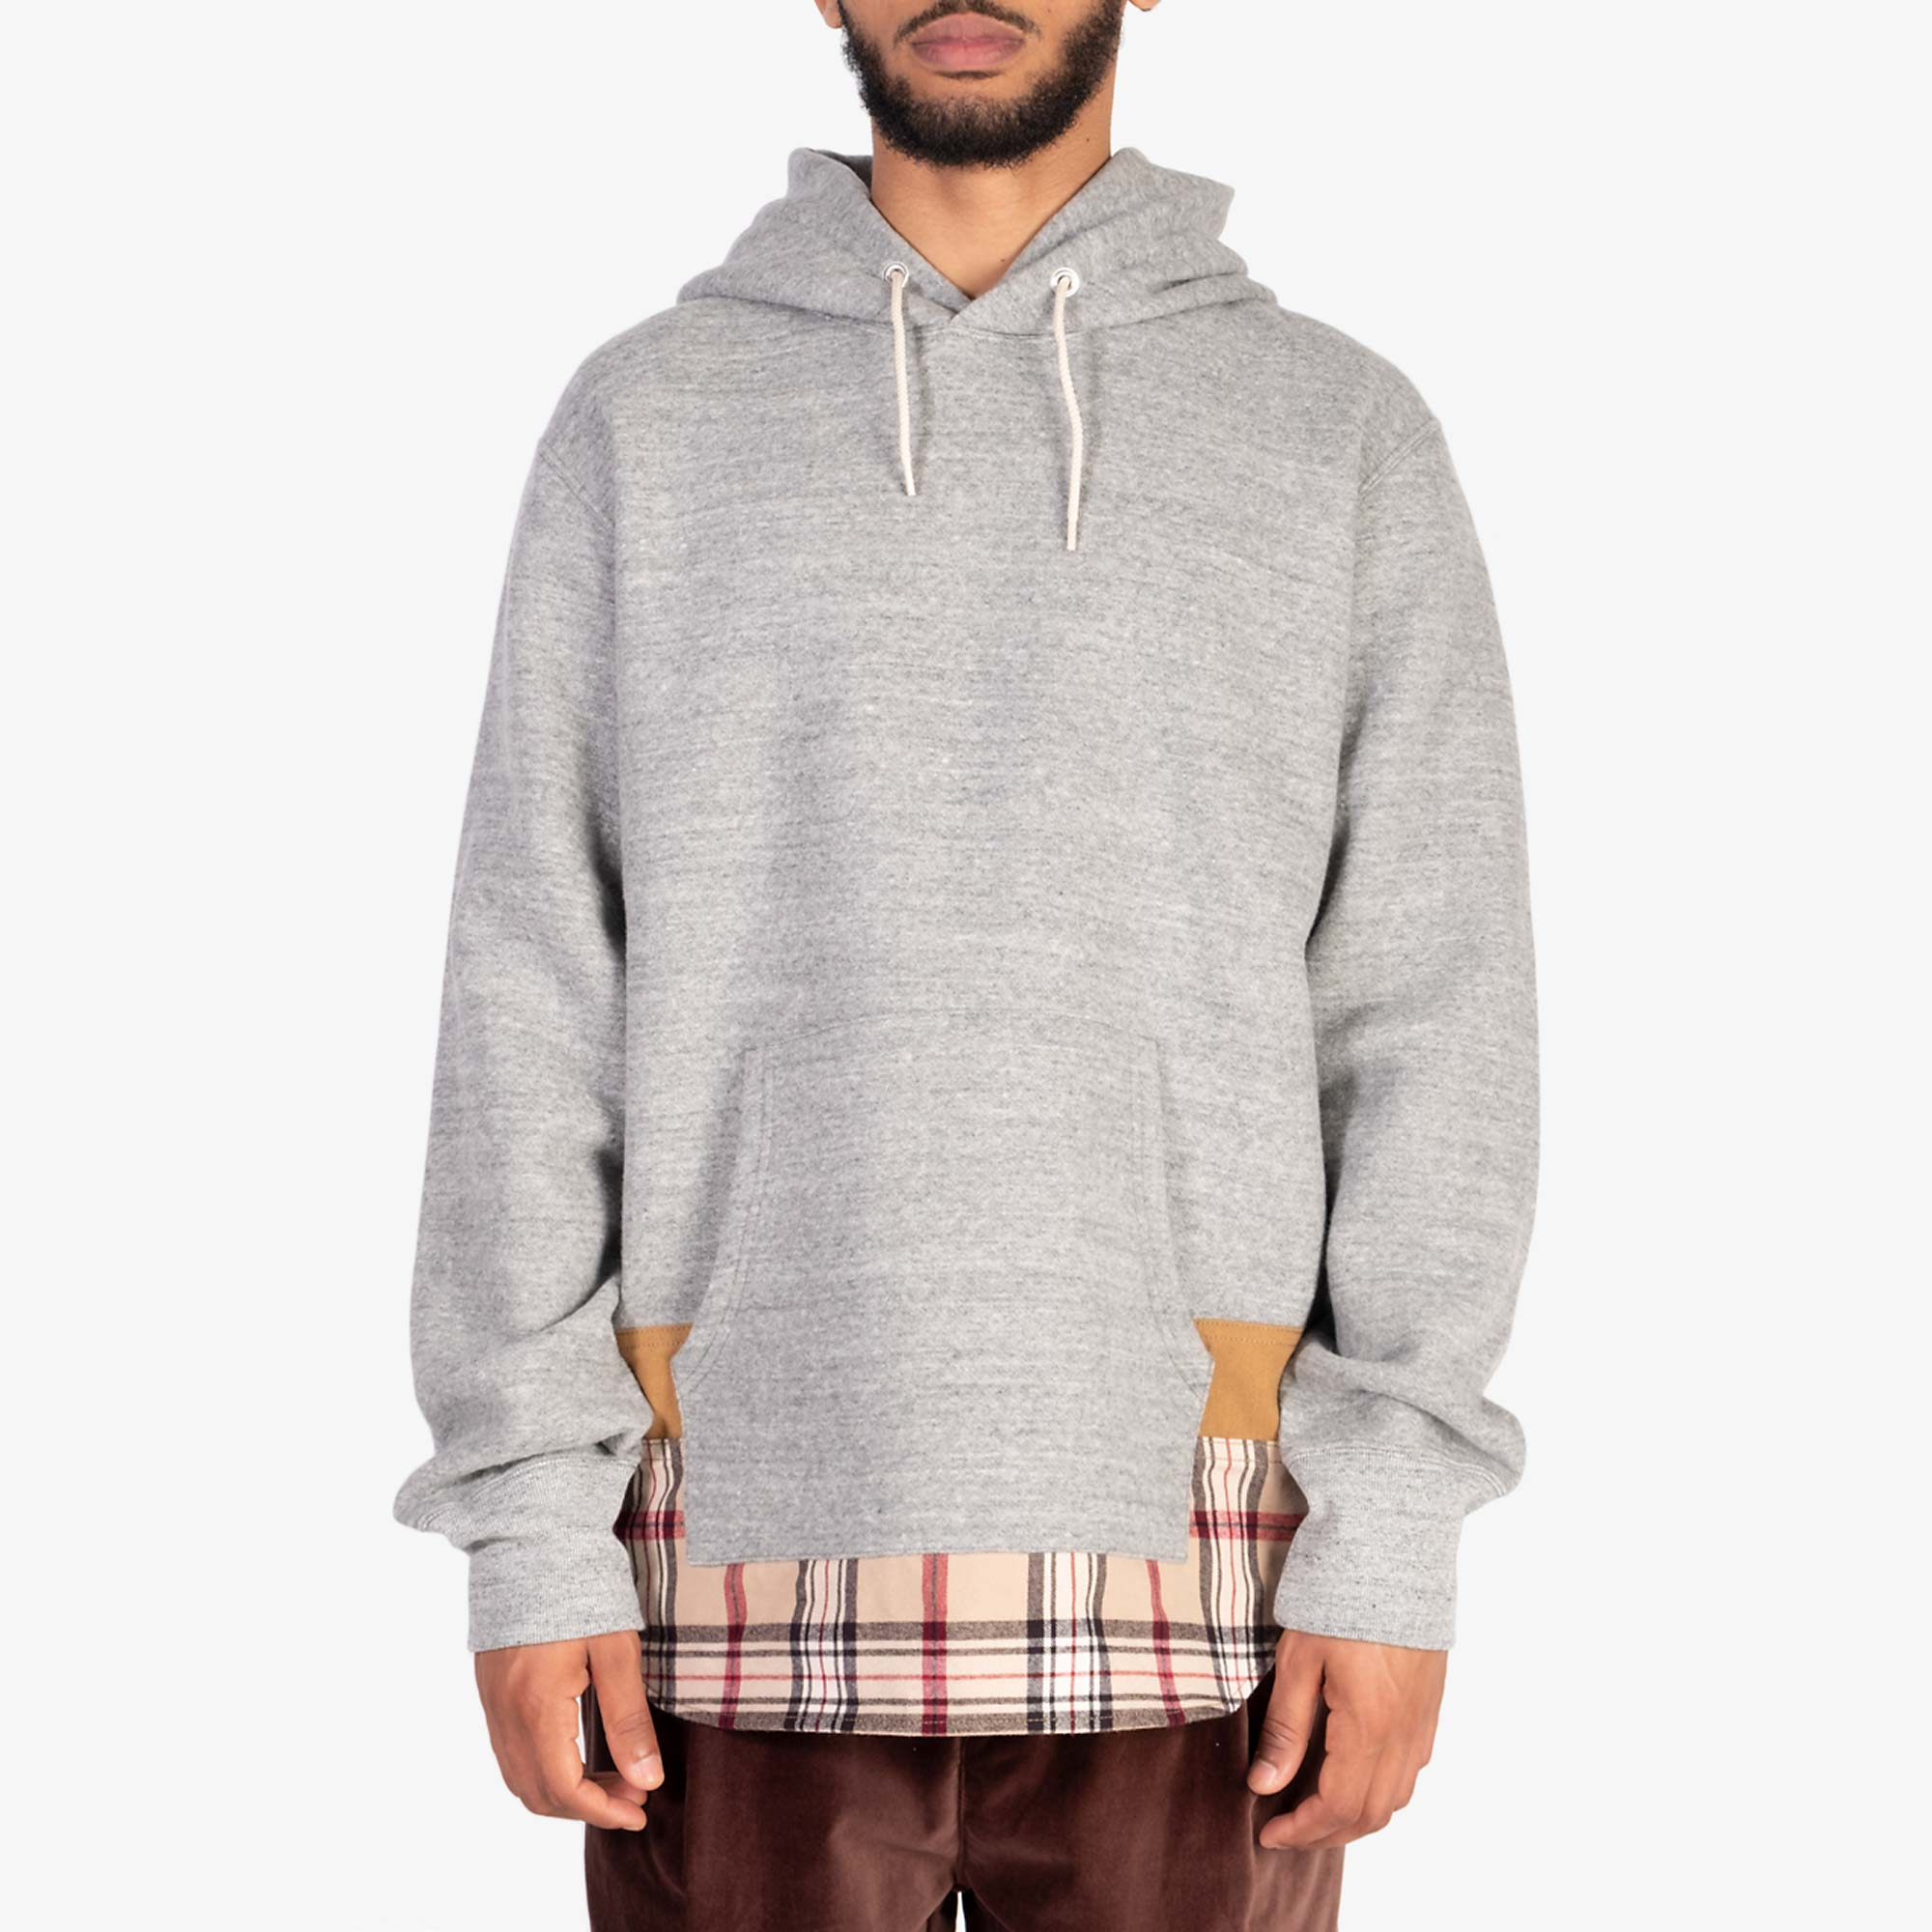 Comme des Garçons - Homme Checked Hem Pullover Hooded Sweat T004 - Grey / Multi 5